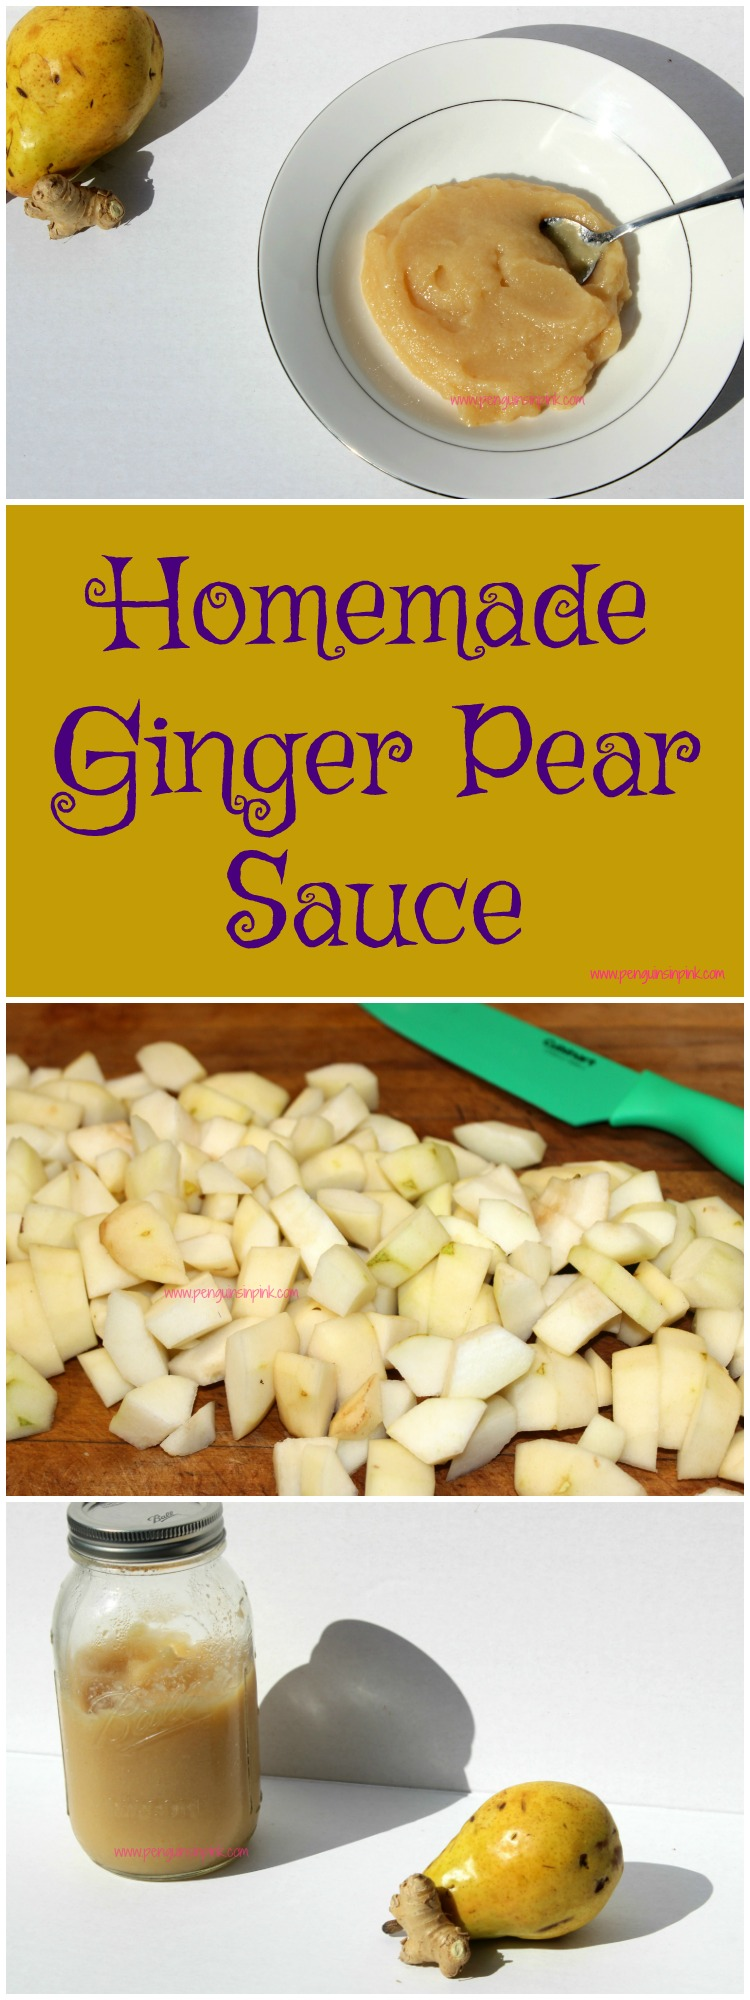 Homemade Ginger Pear Sauce is super easy to make on the stove or in the Crock-pot. Not only is it a delicious snack but it is great for treating upset stomachs.